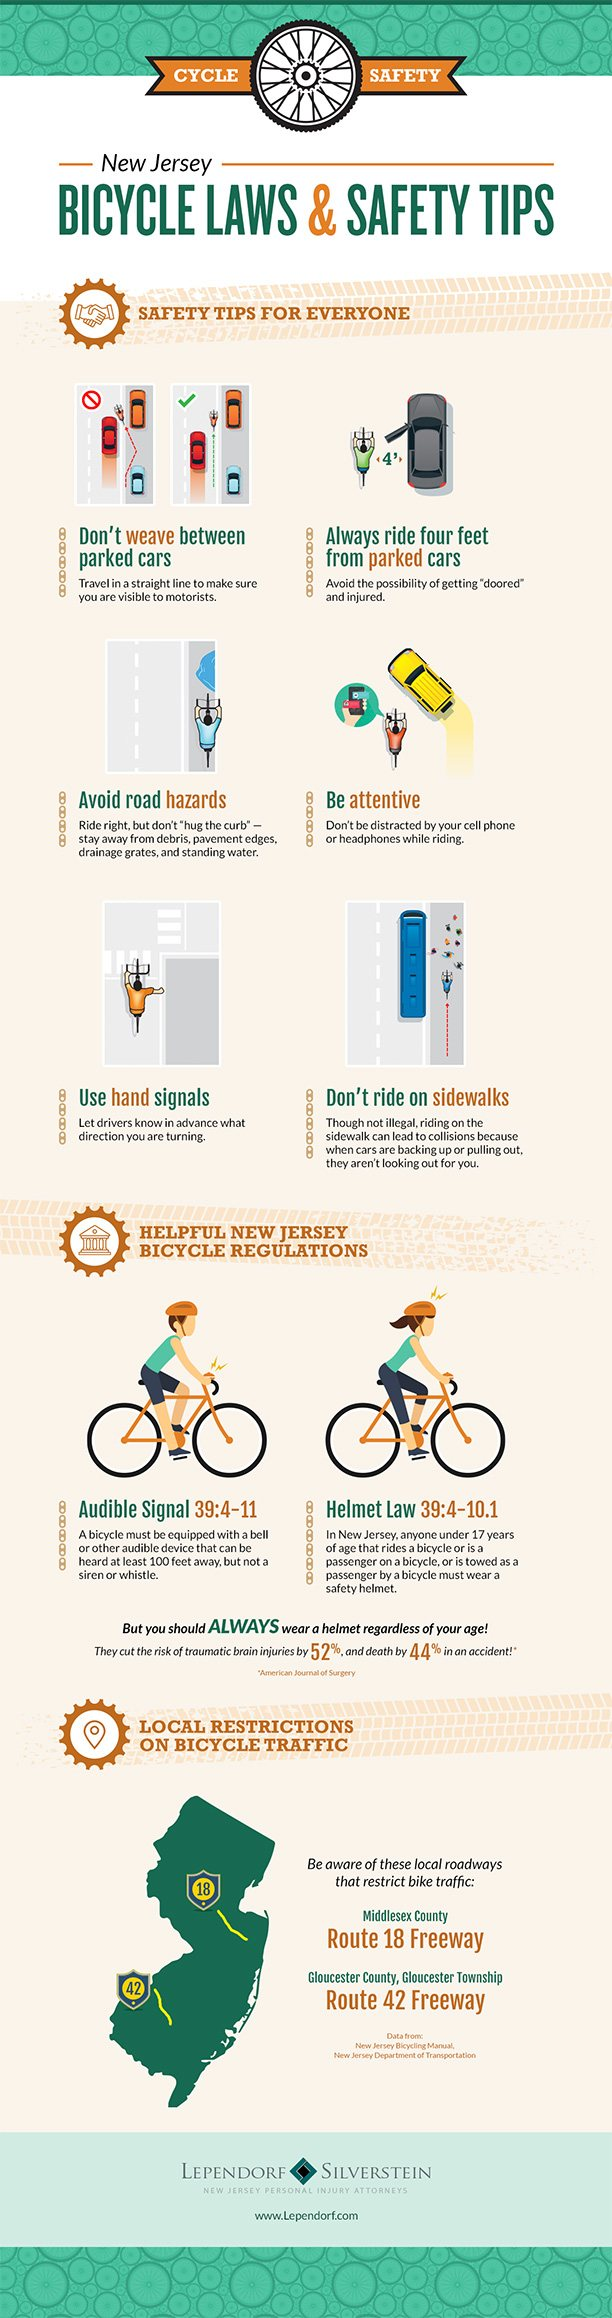 New Jersey Bicycle Laws and Safety Tips #infographic #Law & Legal #Bicycle Laws #Safety Tips